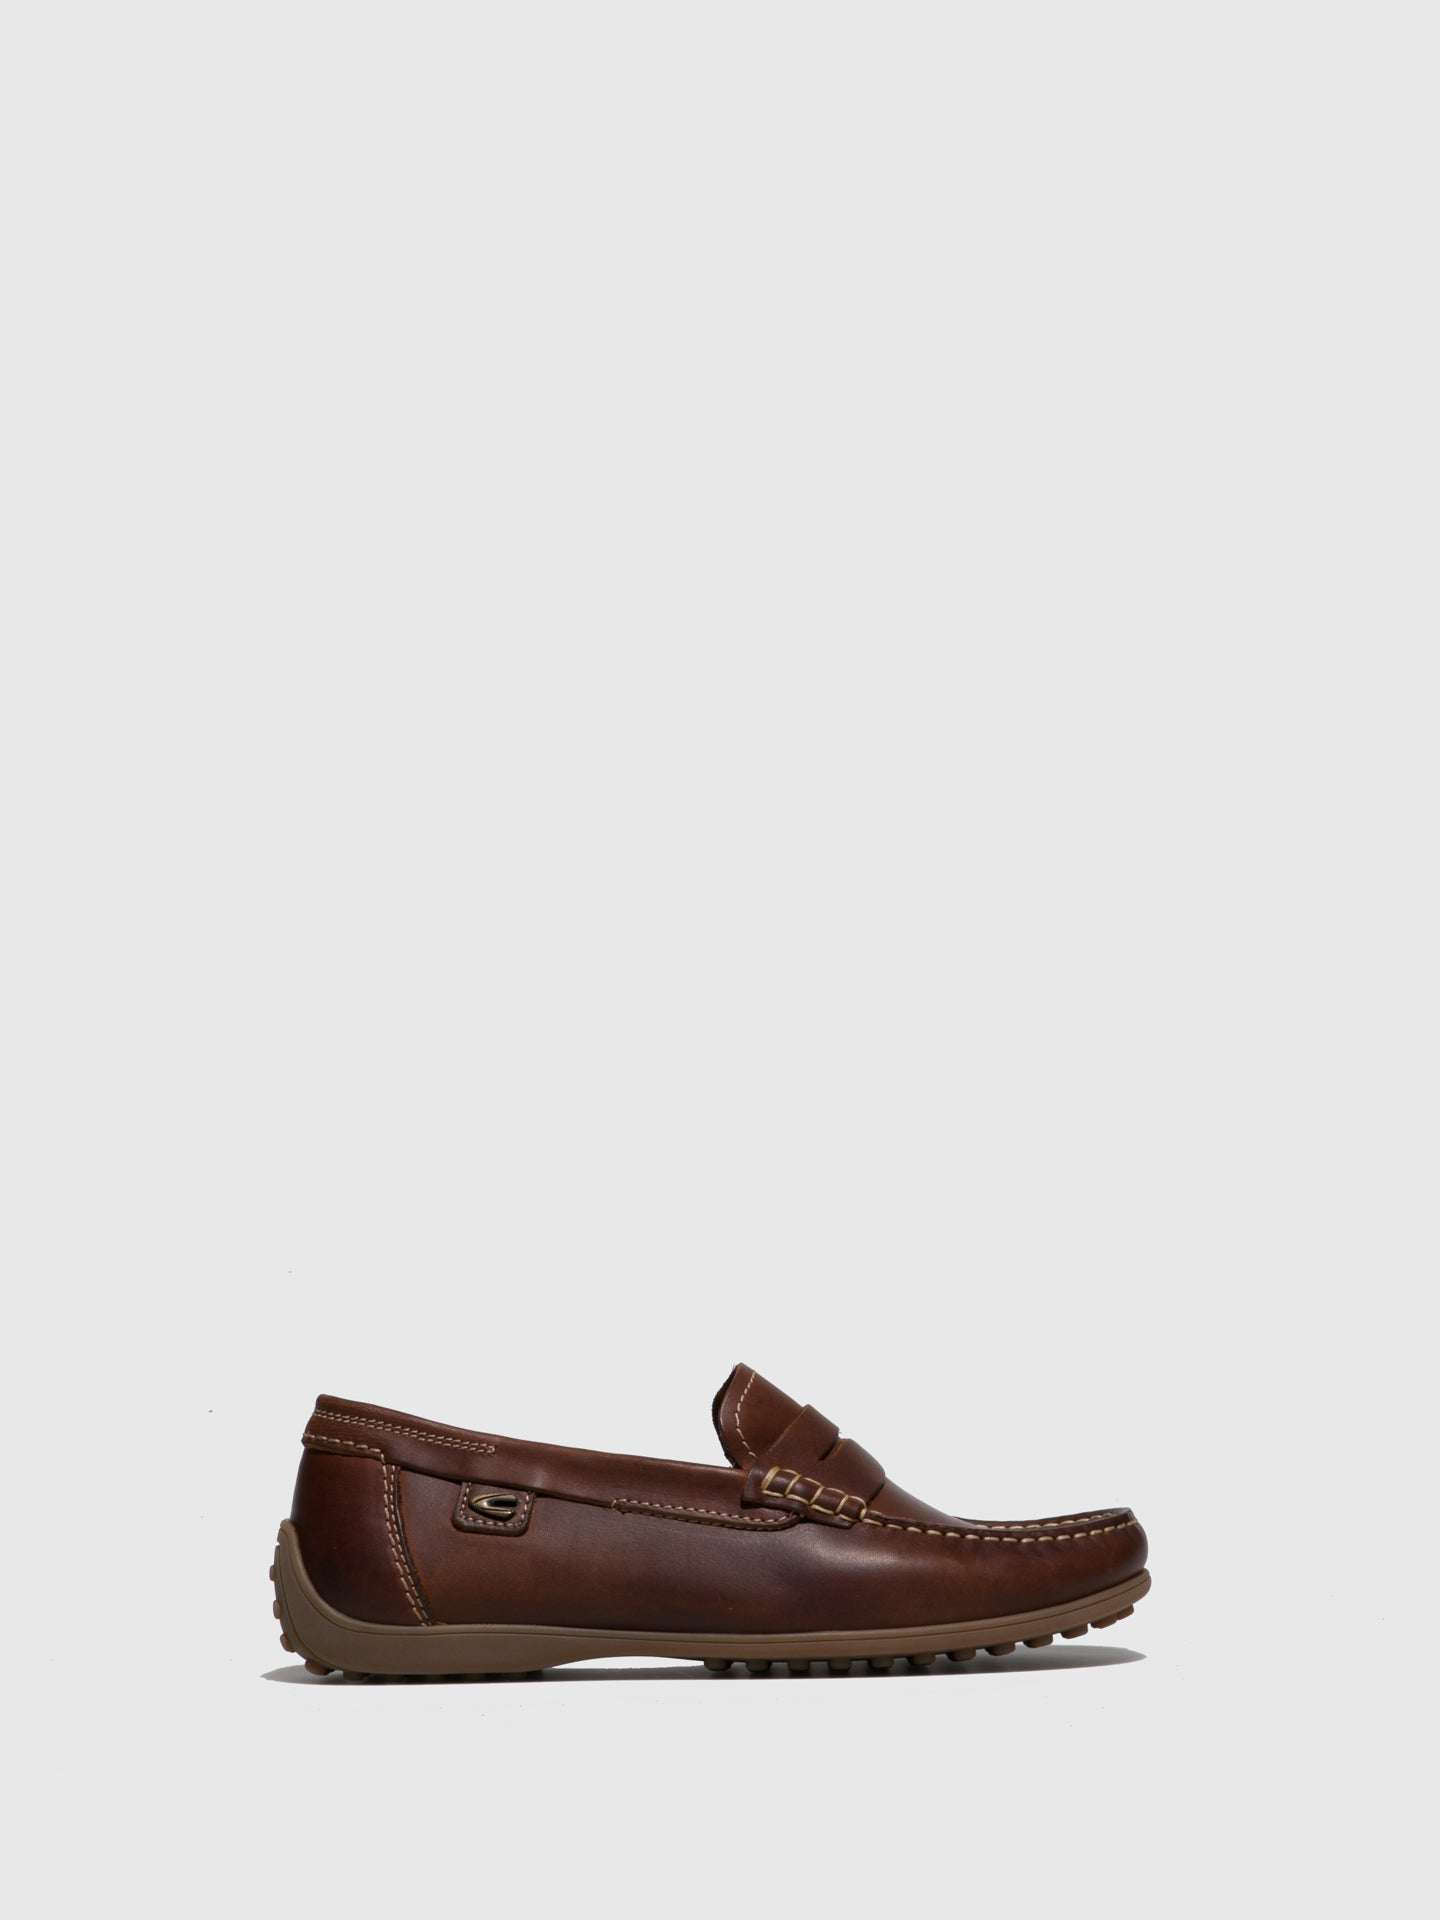 Camel Active Camel Slip-on Shoes